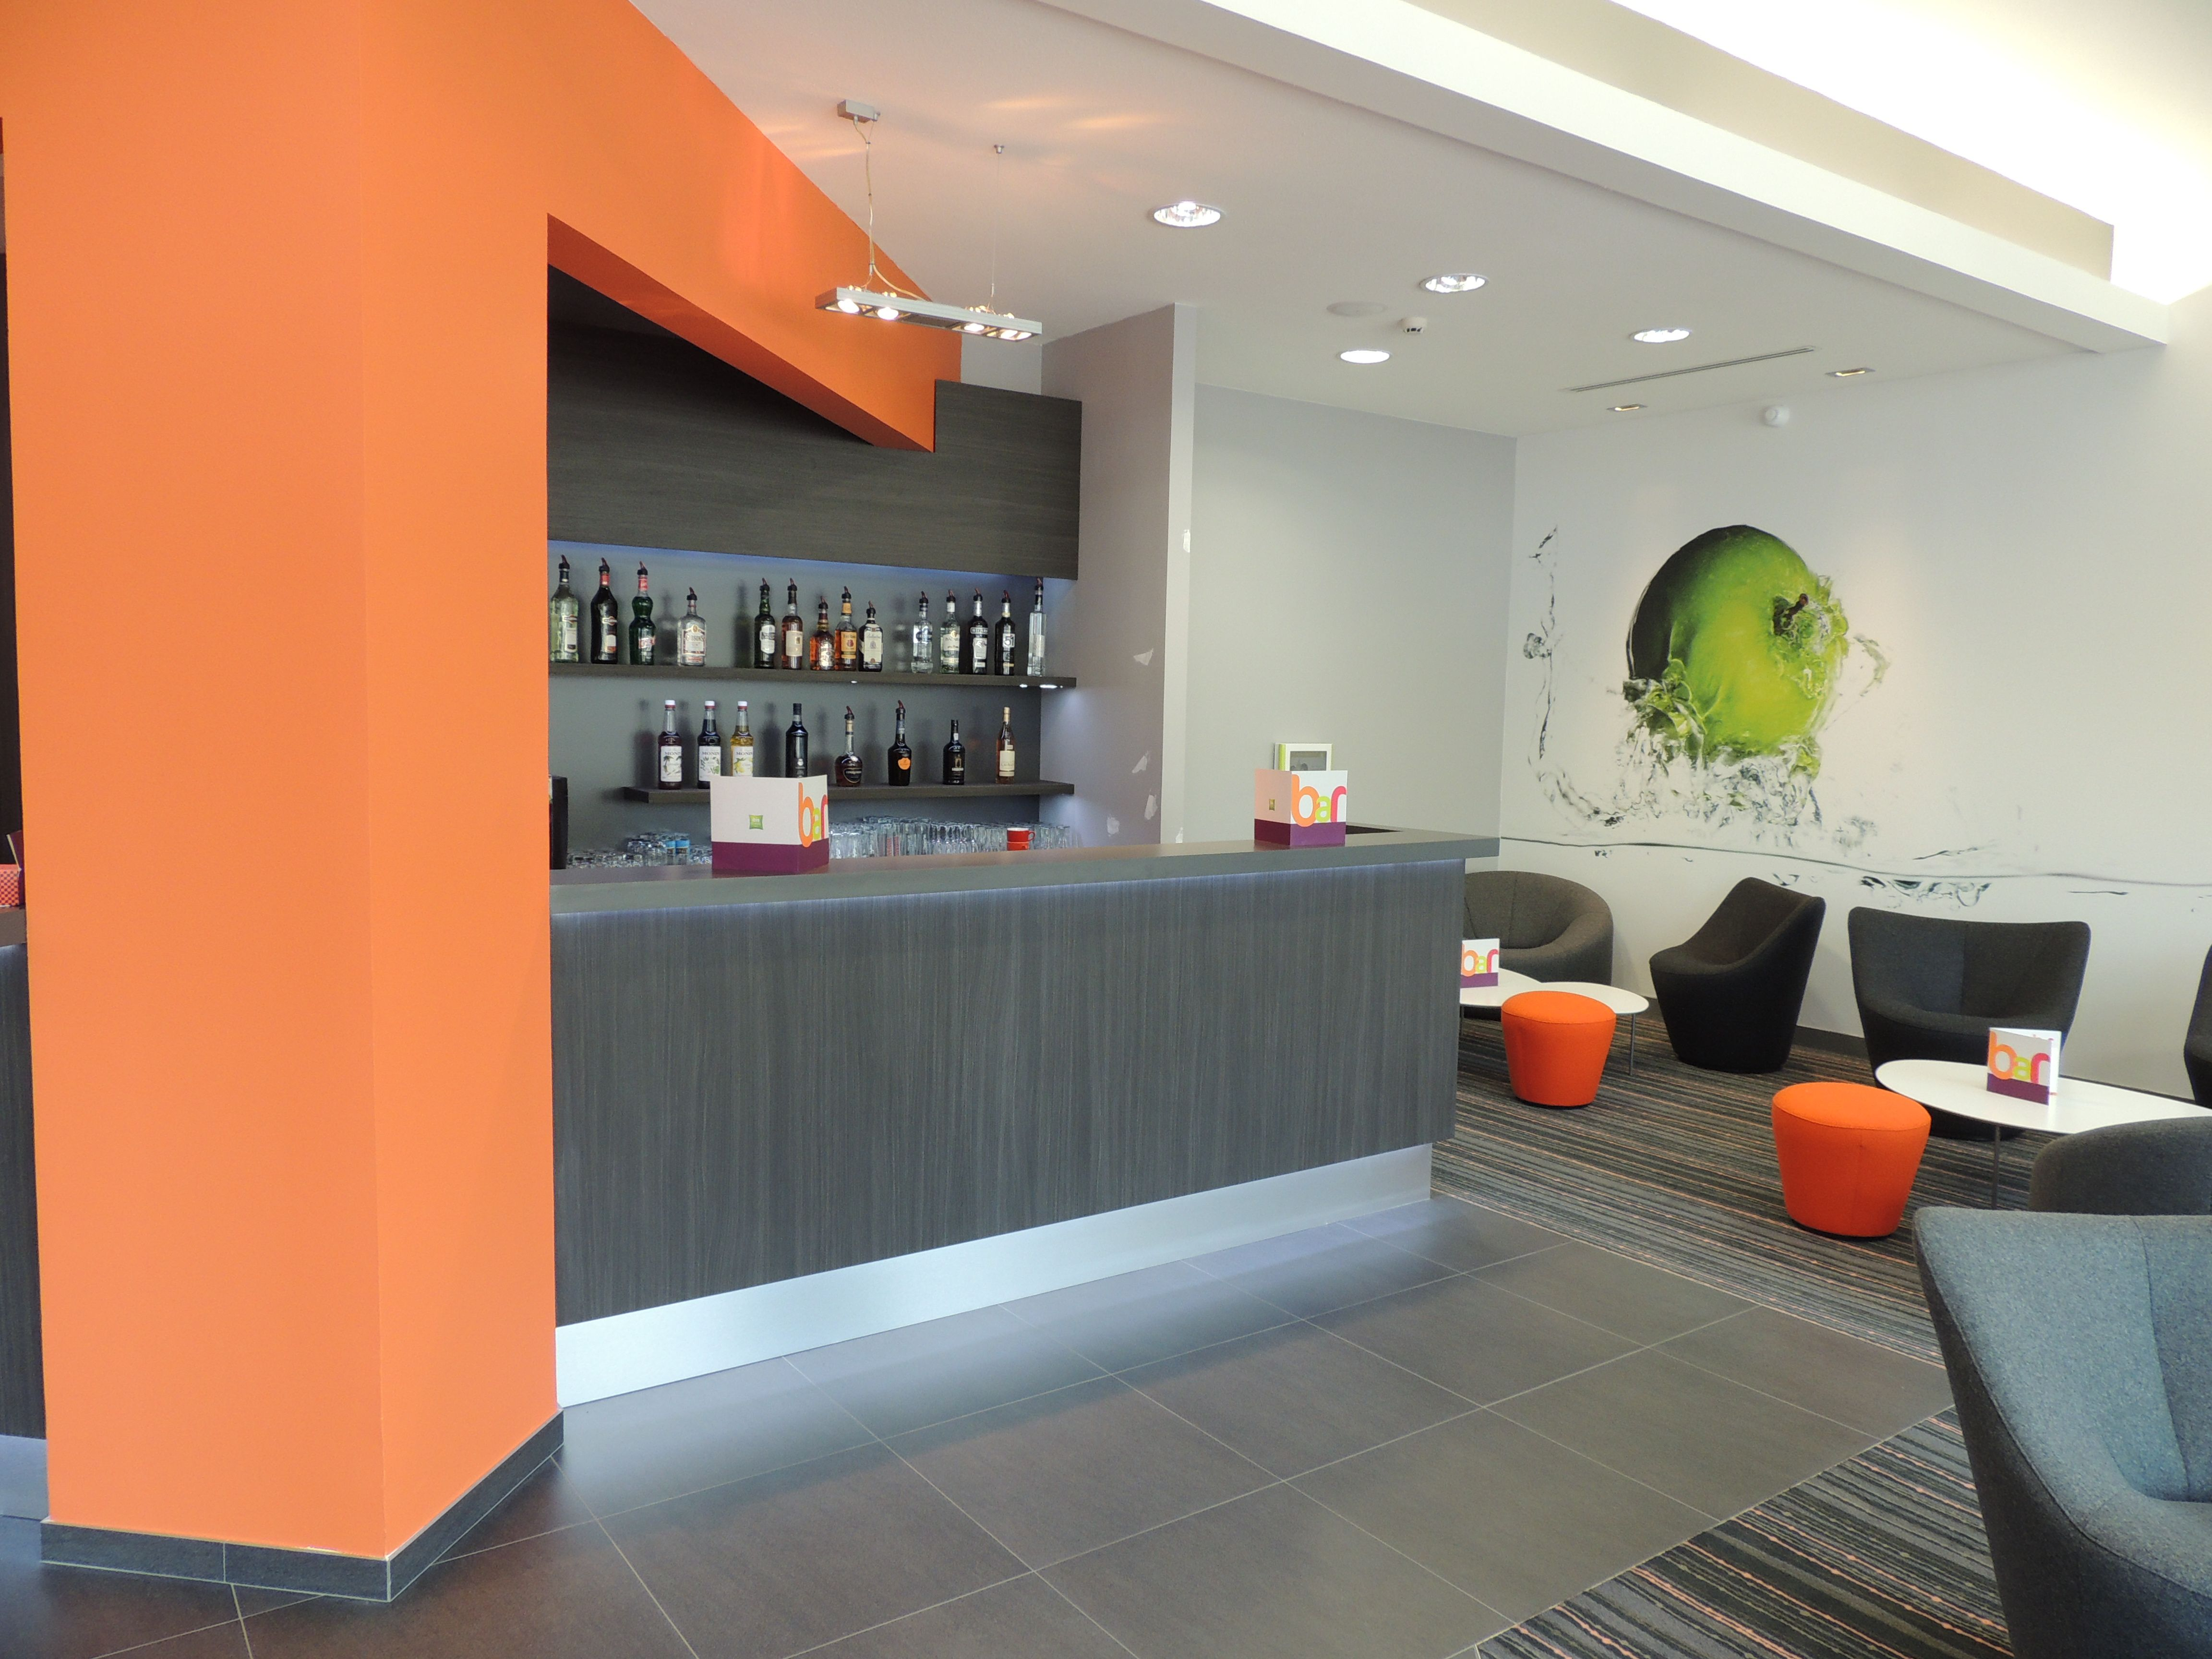 Ibis Style Hotel (Caen, France) With Some Of Our Décors, Including Our